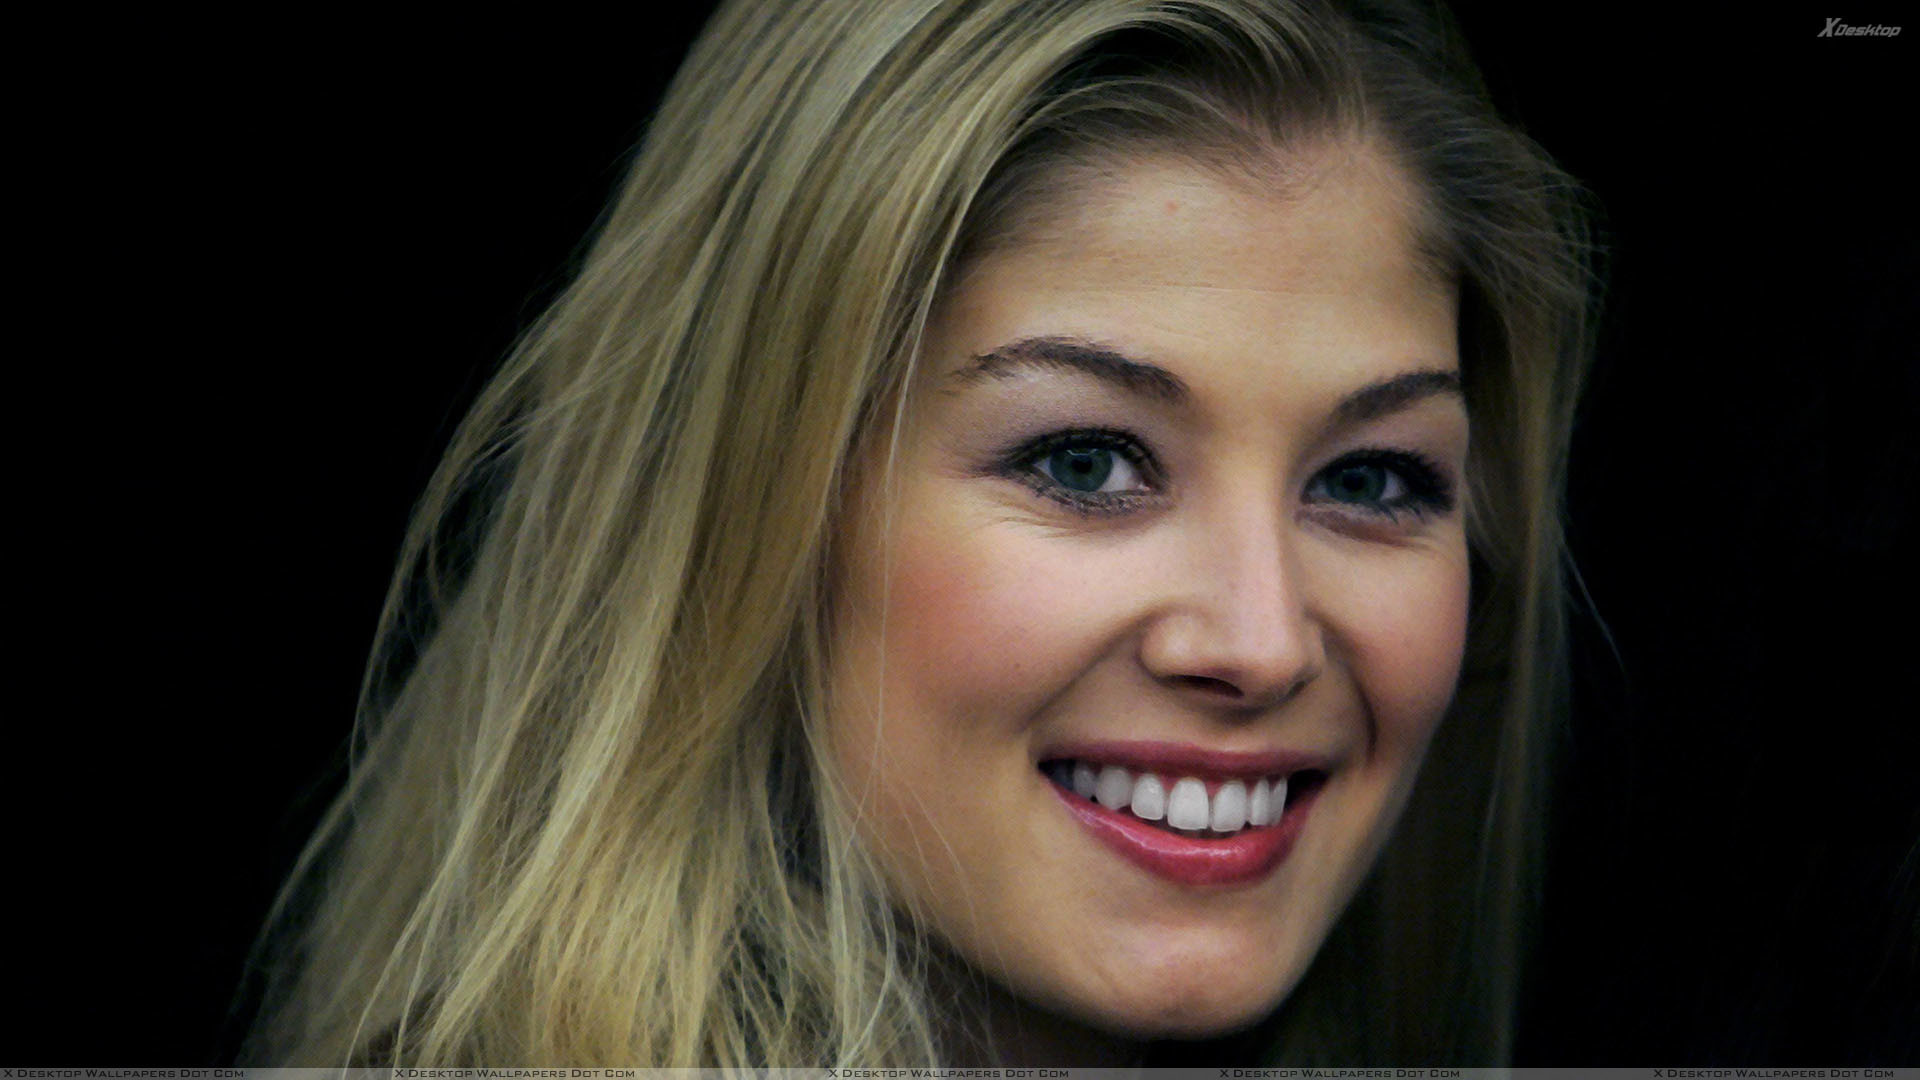 Rosamund Pike Smiling Red Lips And Black Background Face Closeup.jpg  (1920×1080